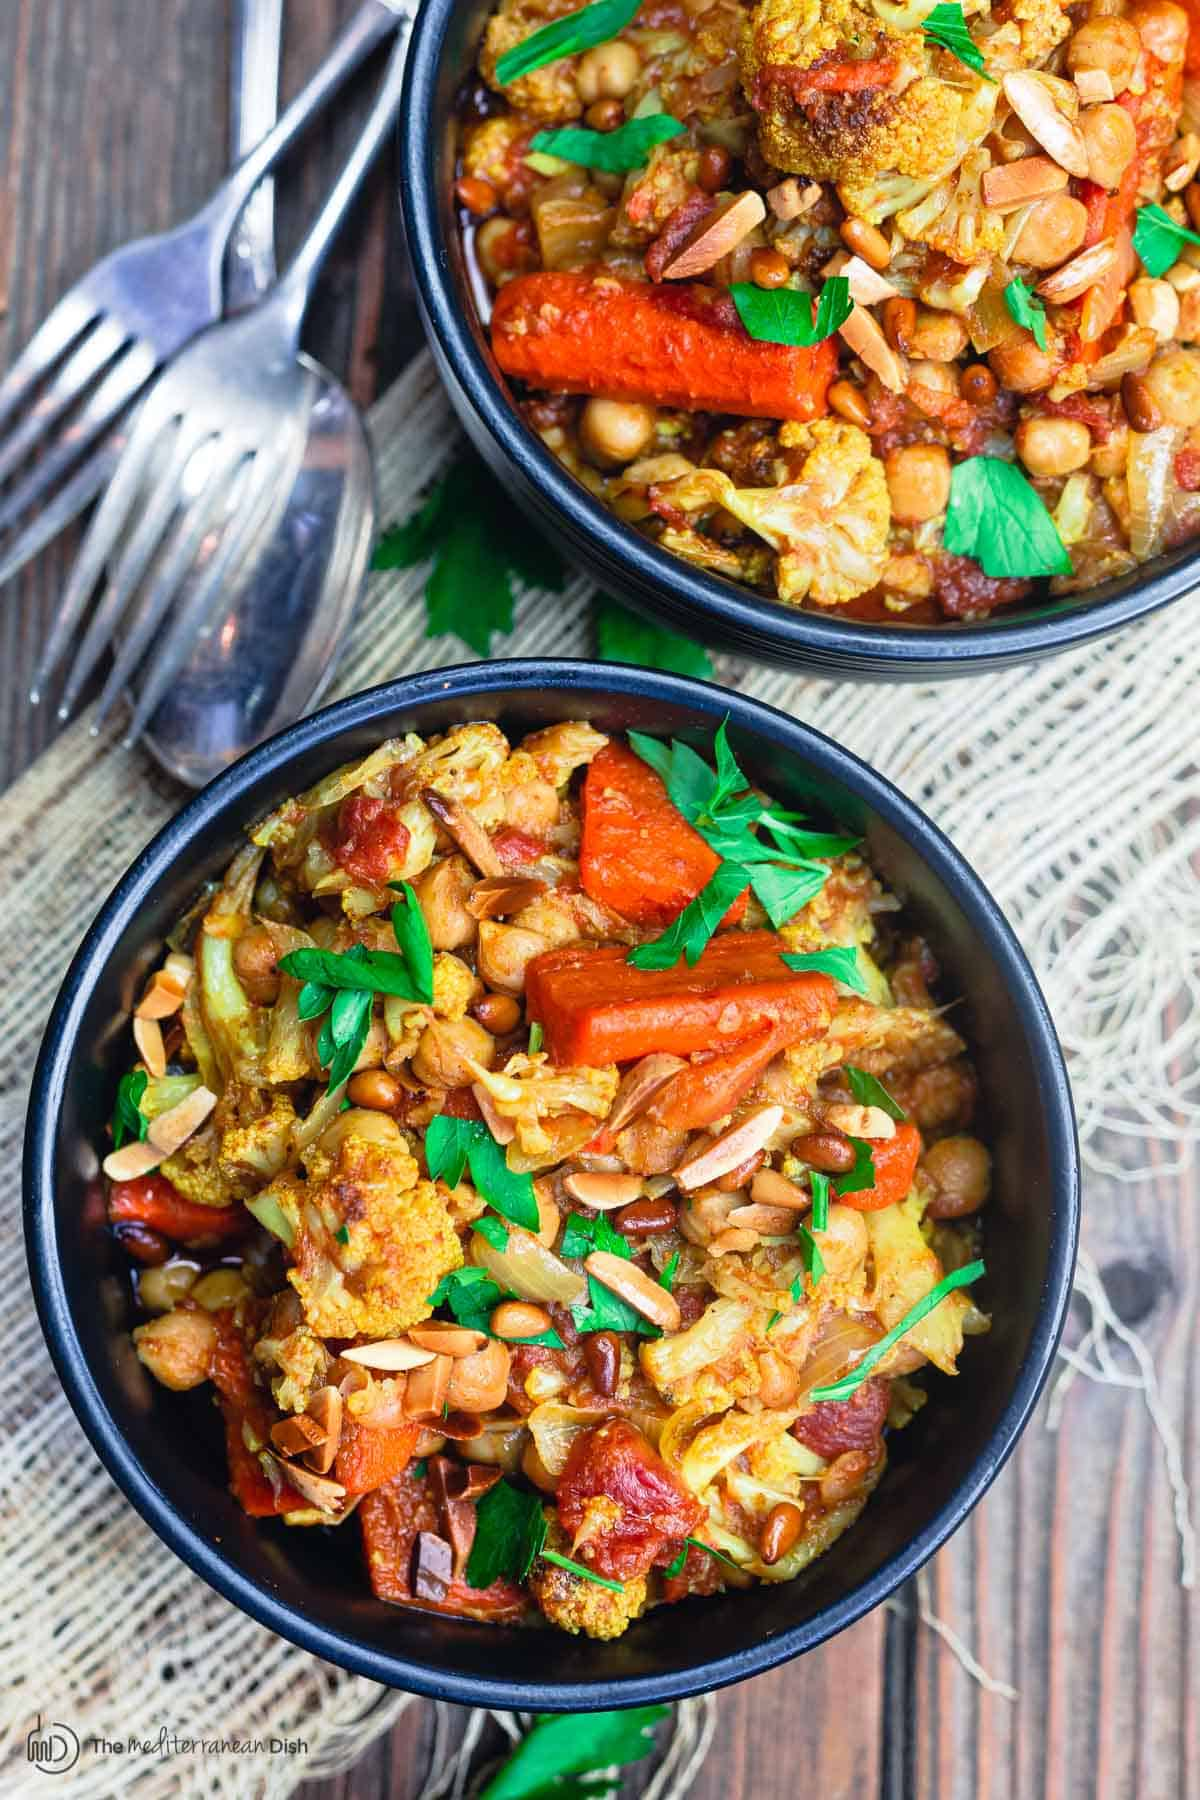 chickpea stew with cauliflower and carrots, served in dinner bowls